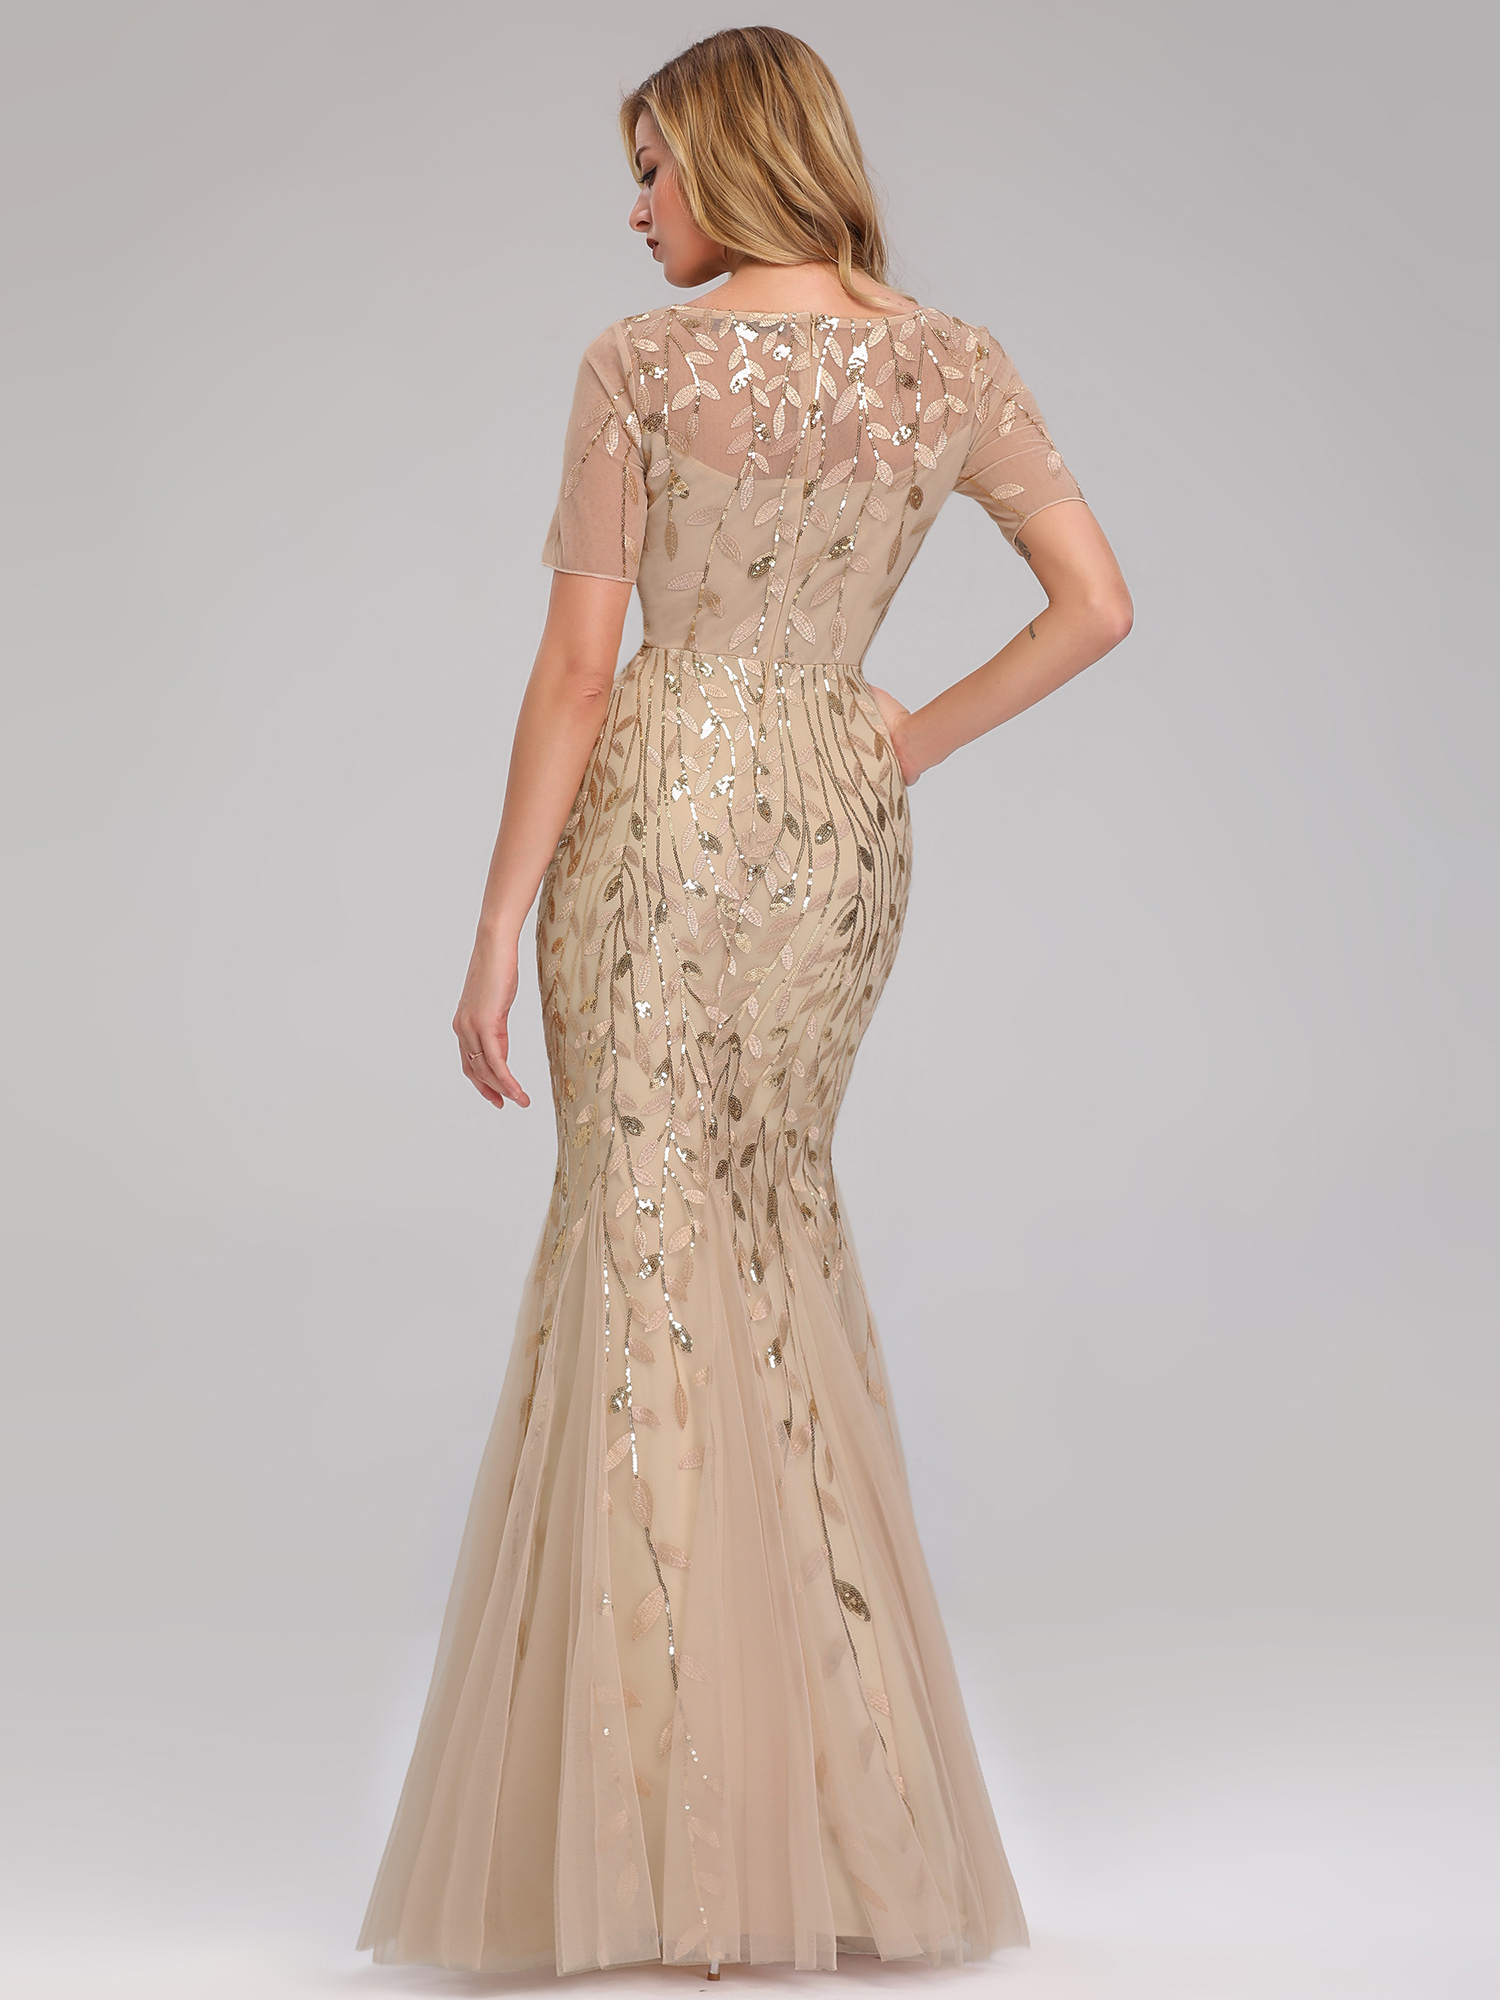 Ever-pretty-Plus-Size-Sequins-Bridesmaid-Dresses-Mermaid-Evening-Party-Prom-Gown thumbnail 31